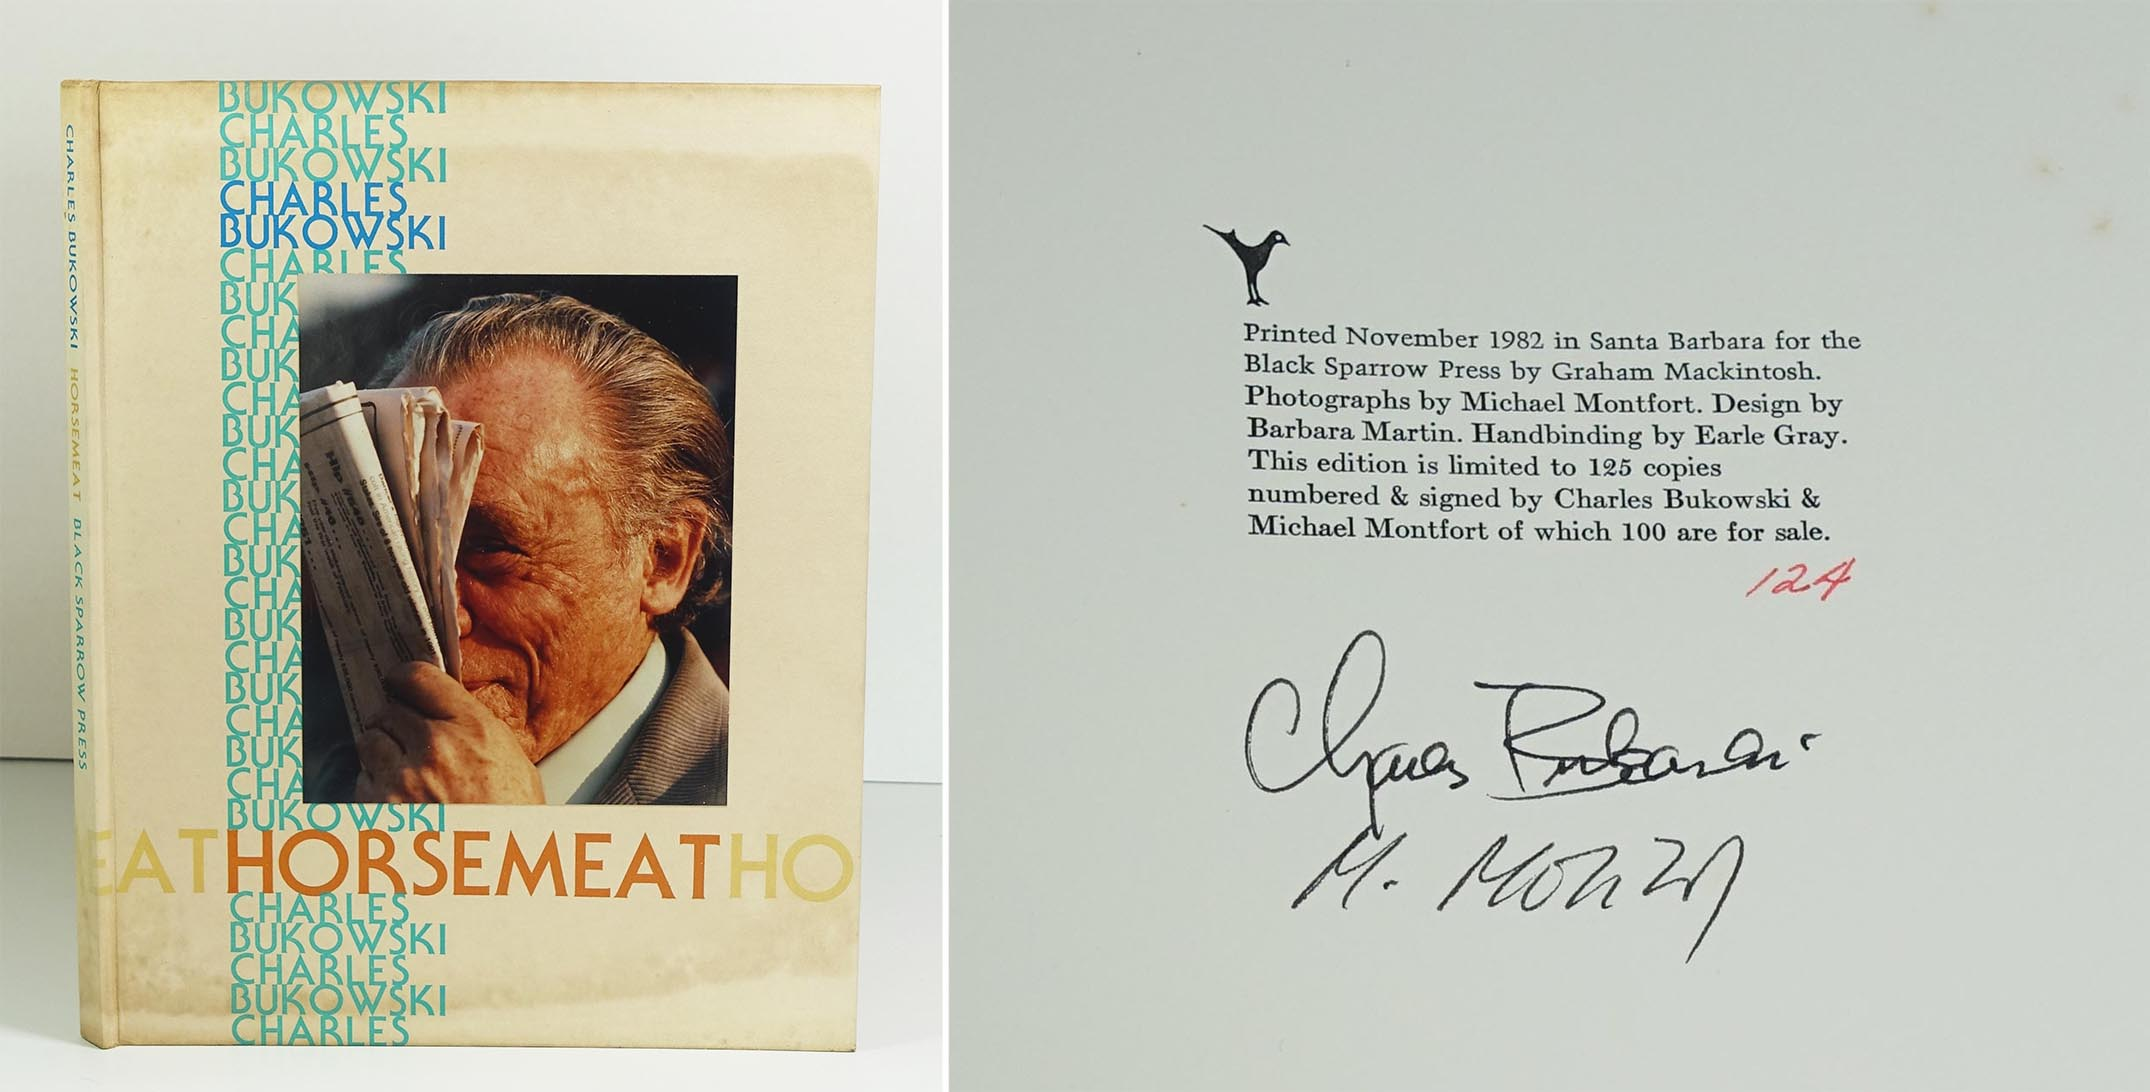 BUKOWSKI Charles Horsemeat Black Sparrow Press, Santa Barbara, 1982. Reliure d